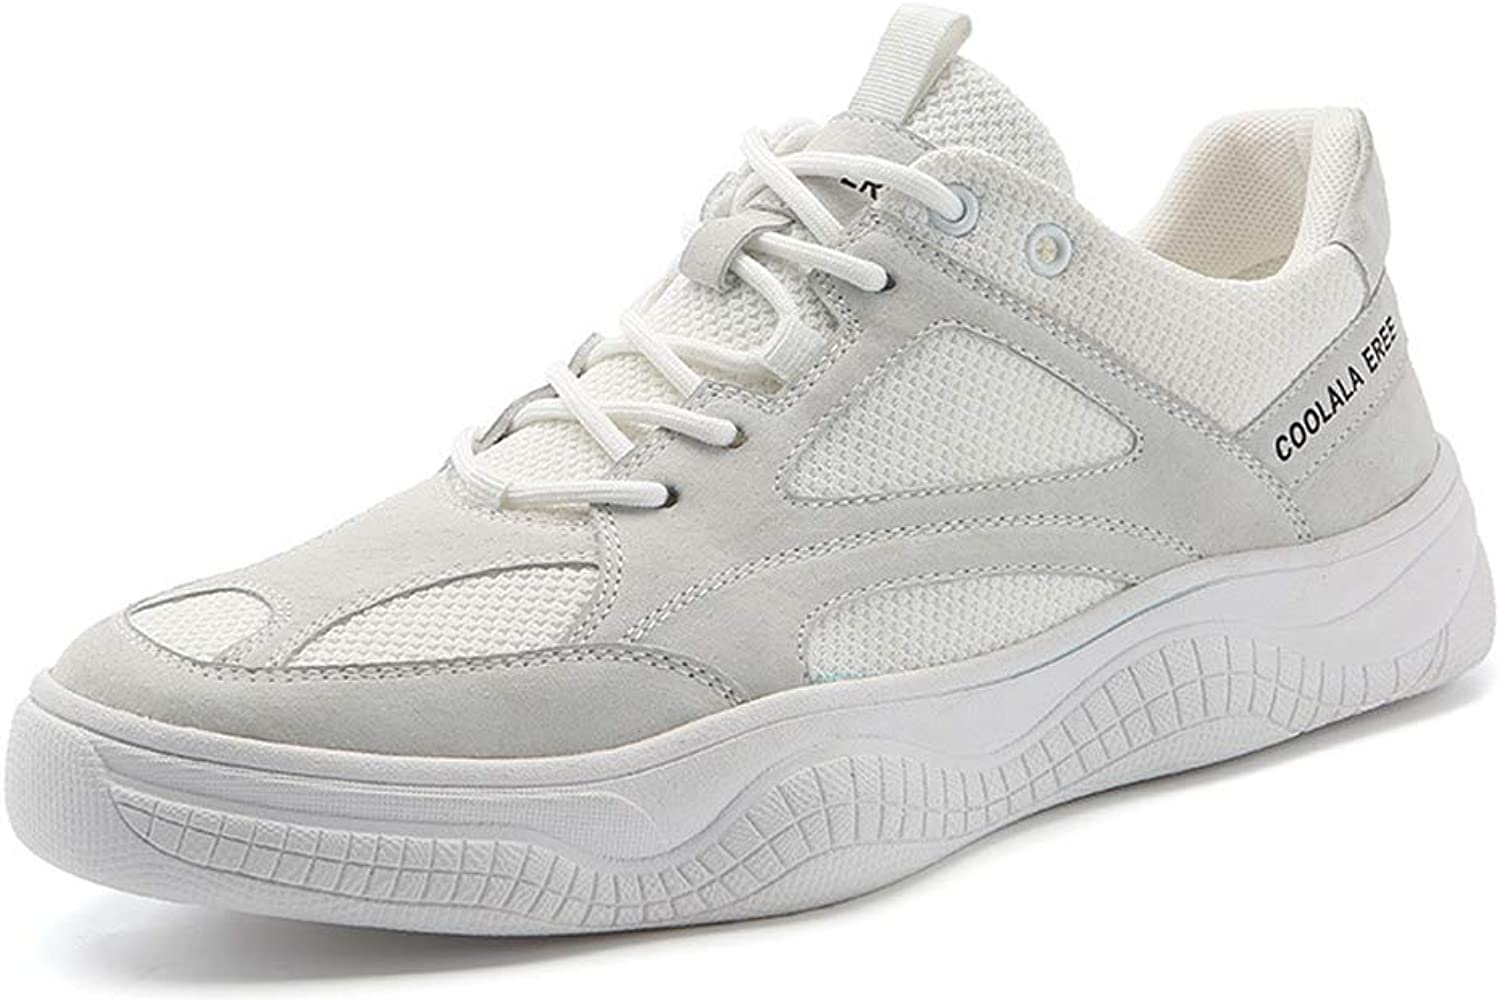 Sneakers Outdoor Hiking Running shoes Lightweight Non-Slip sneakers-White-41